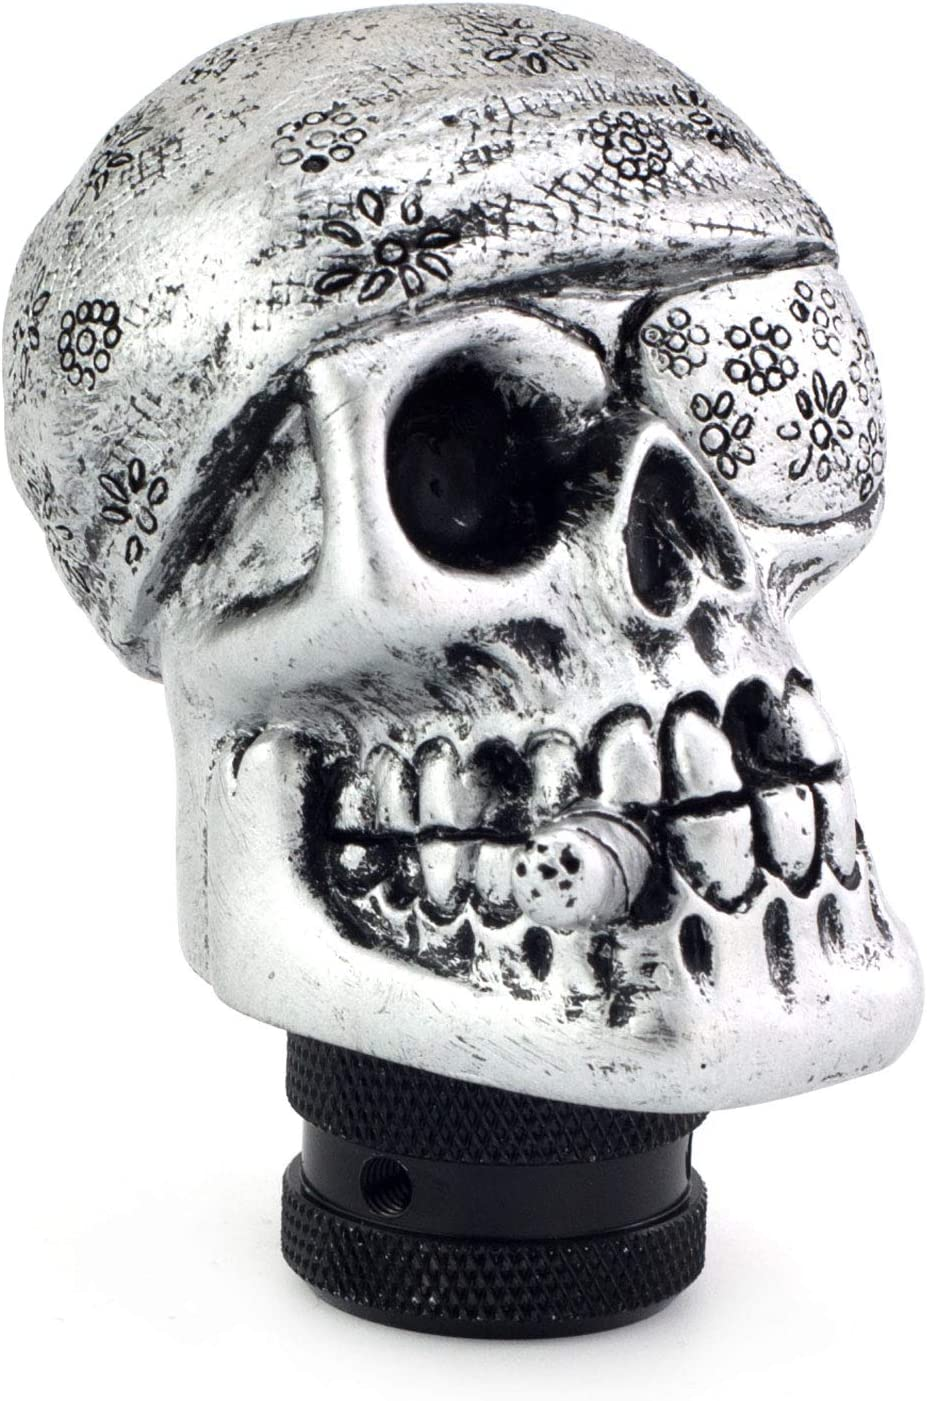 Thruifo MT Skull Gear Knob Shifter One-Eyed Pirate Style Car Stick Shift Head Fit Most Manual Automatic Vehicles Silver